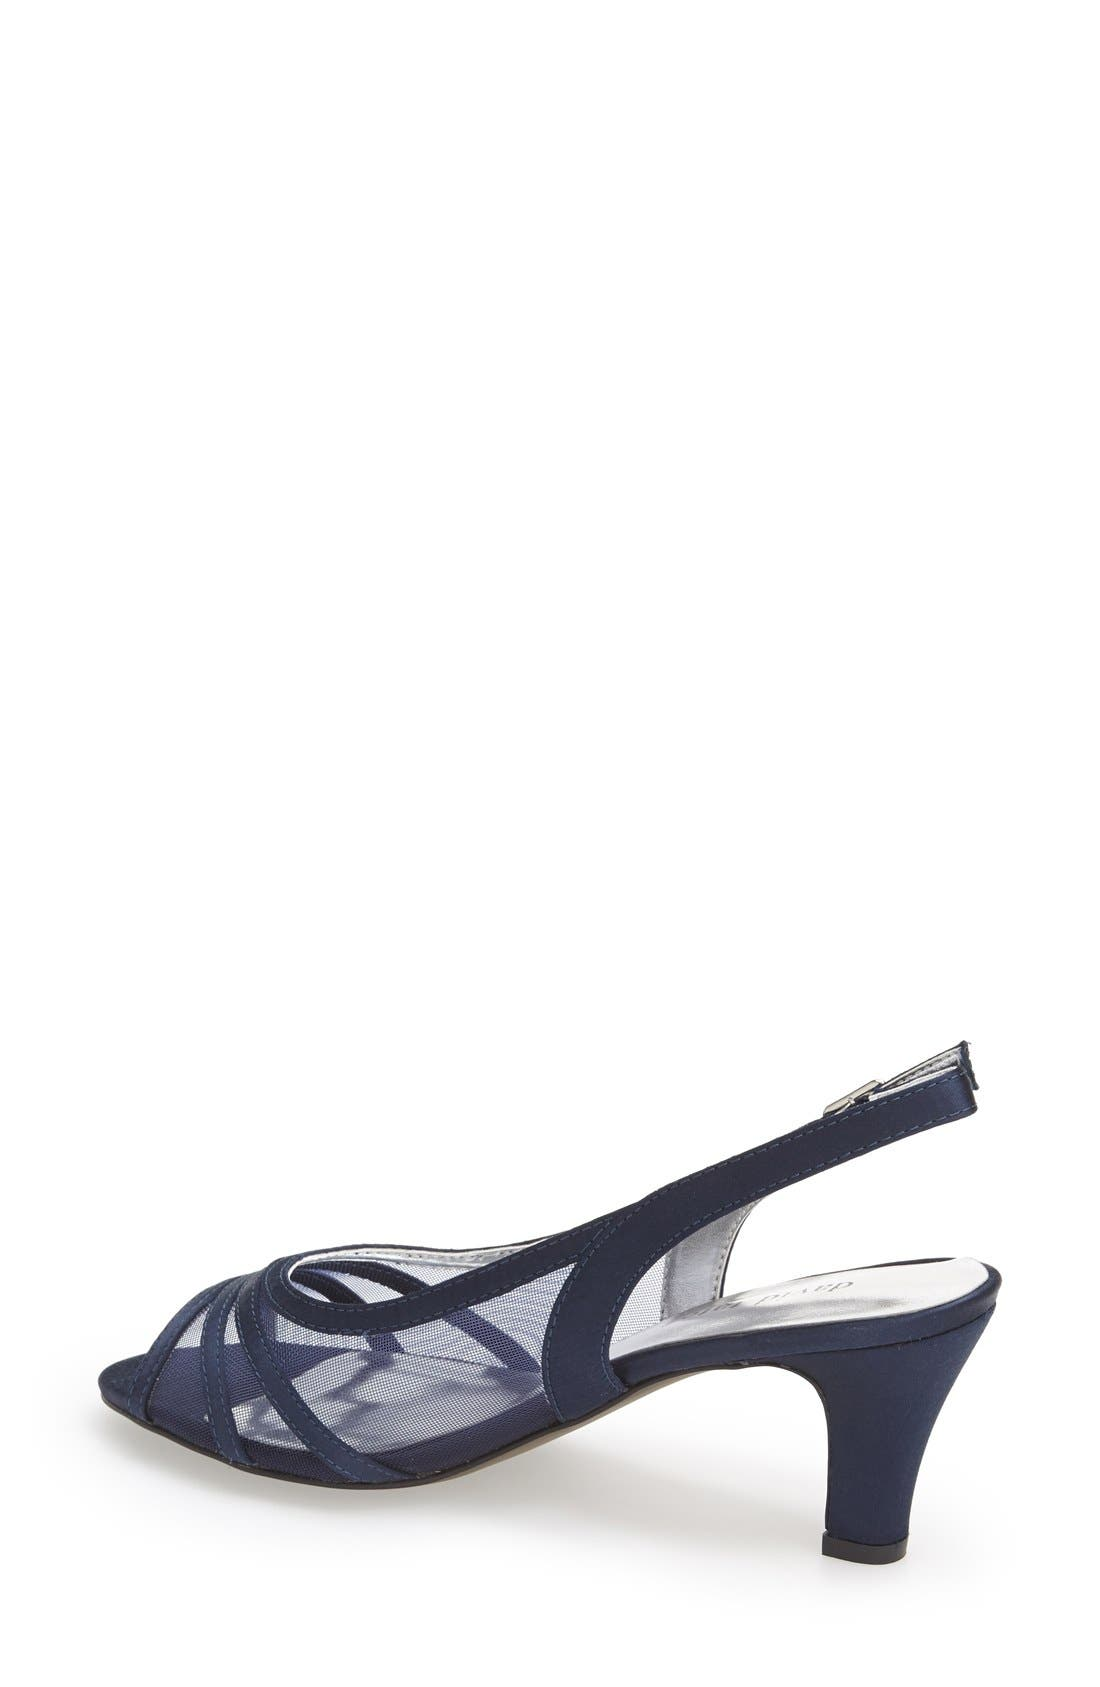 'Petal' Open Toe Slingback Pump,                             Alternate thumbnail 2, color,                             Navy Fabric